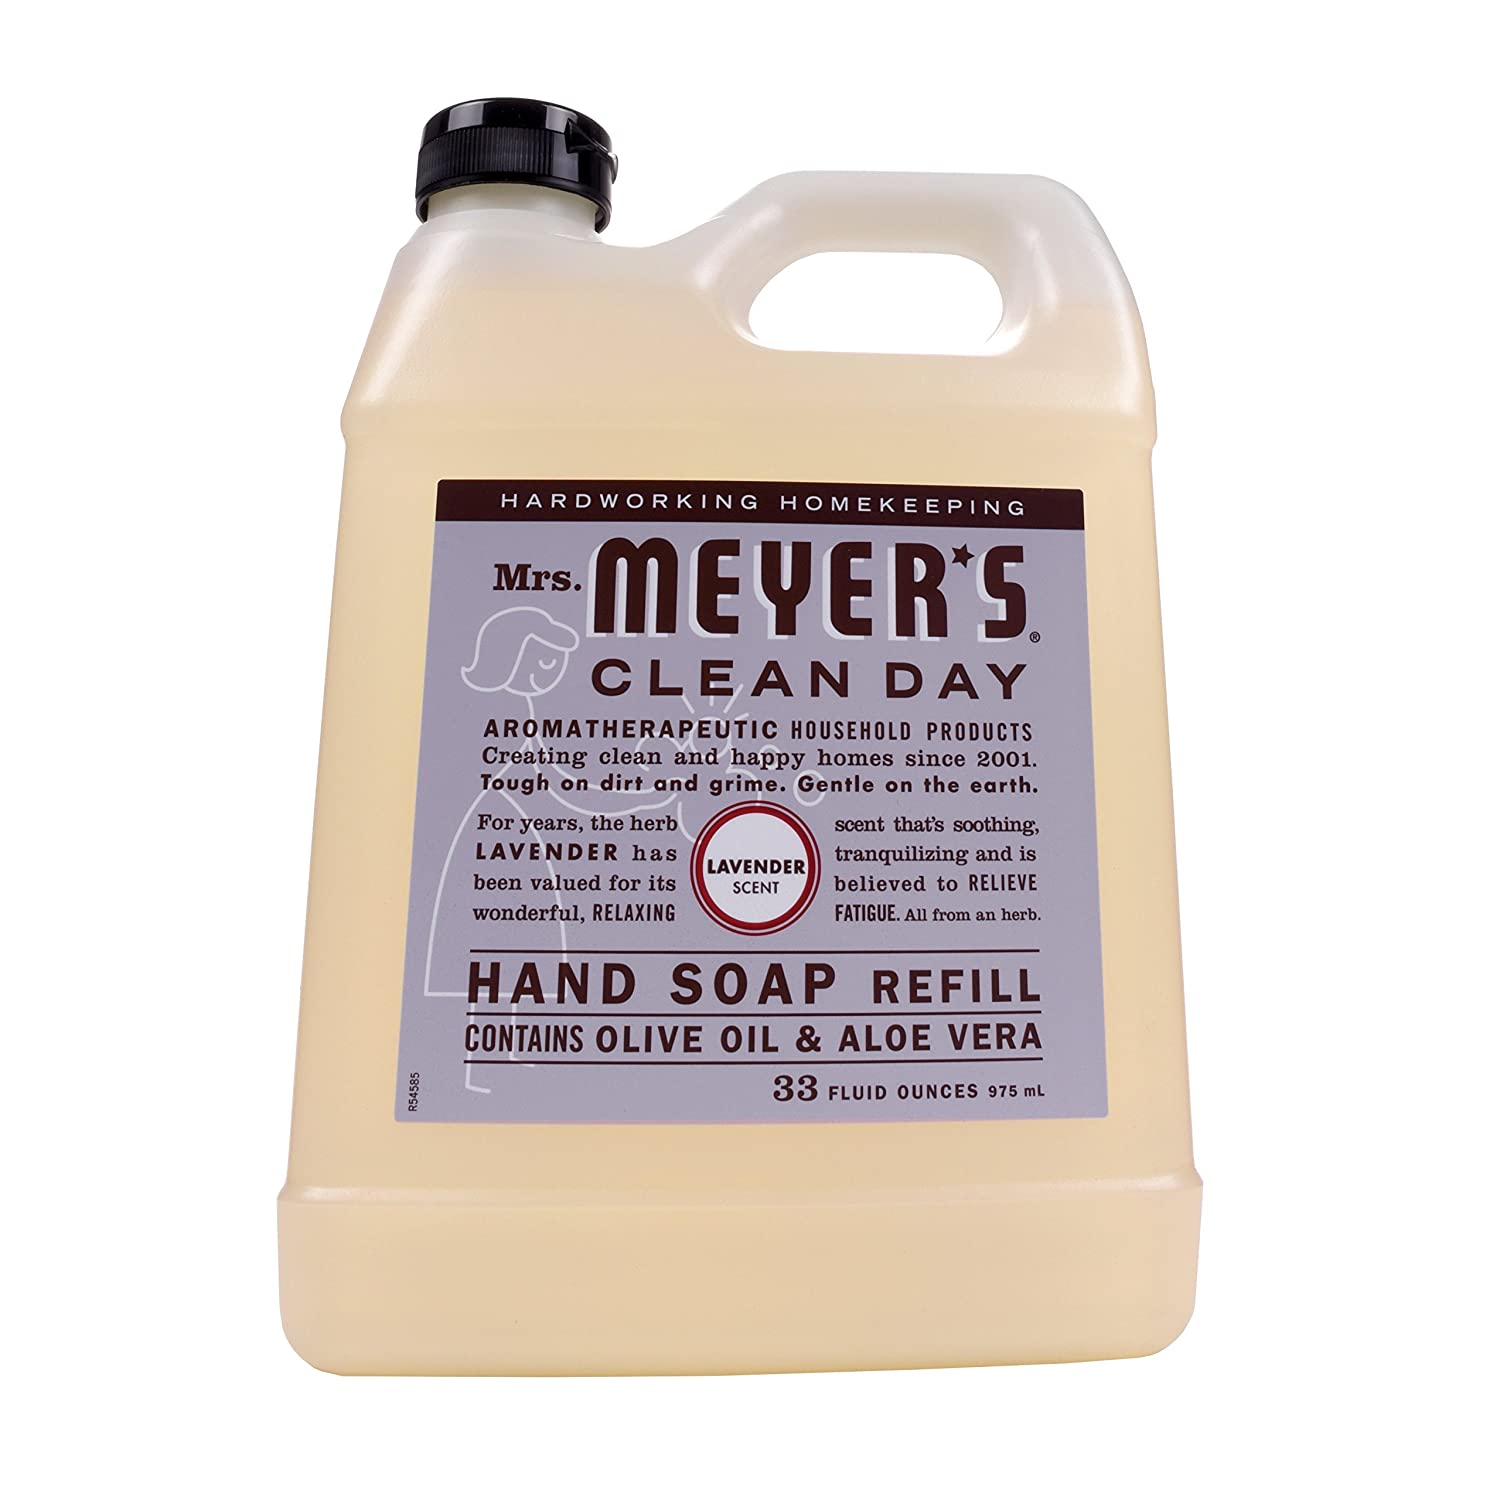 Mrs. Meyers Clean Day Hand Soap Refill, Lavender 33 oz Mrs. Meyer's Clean Day 11163